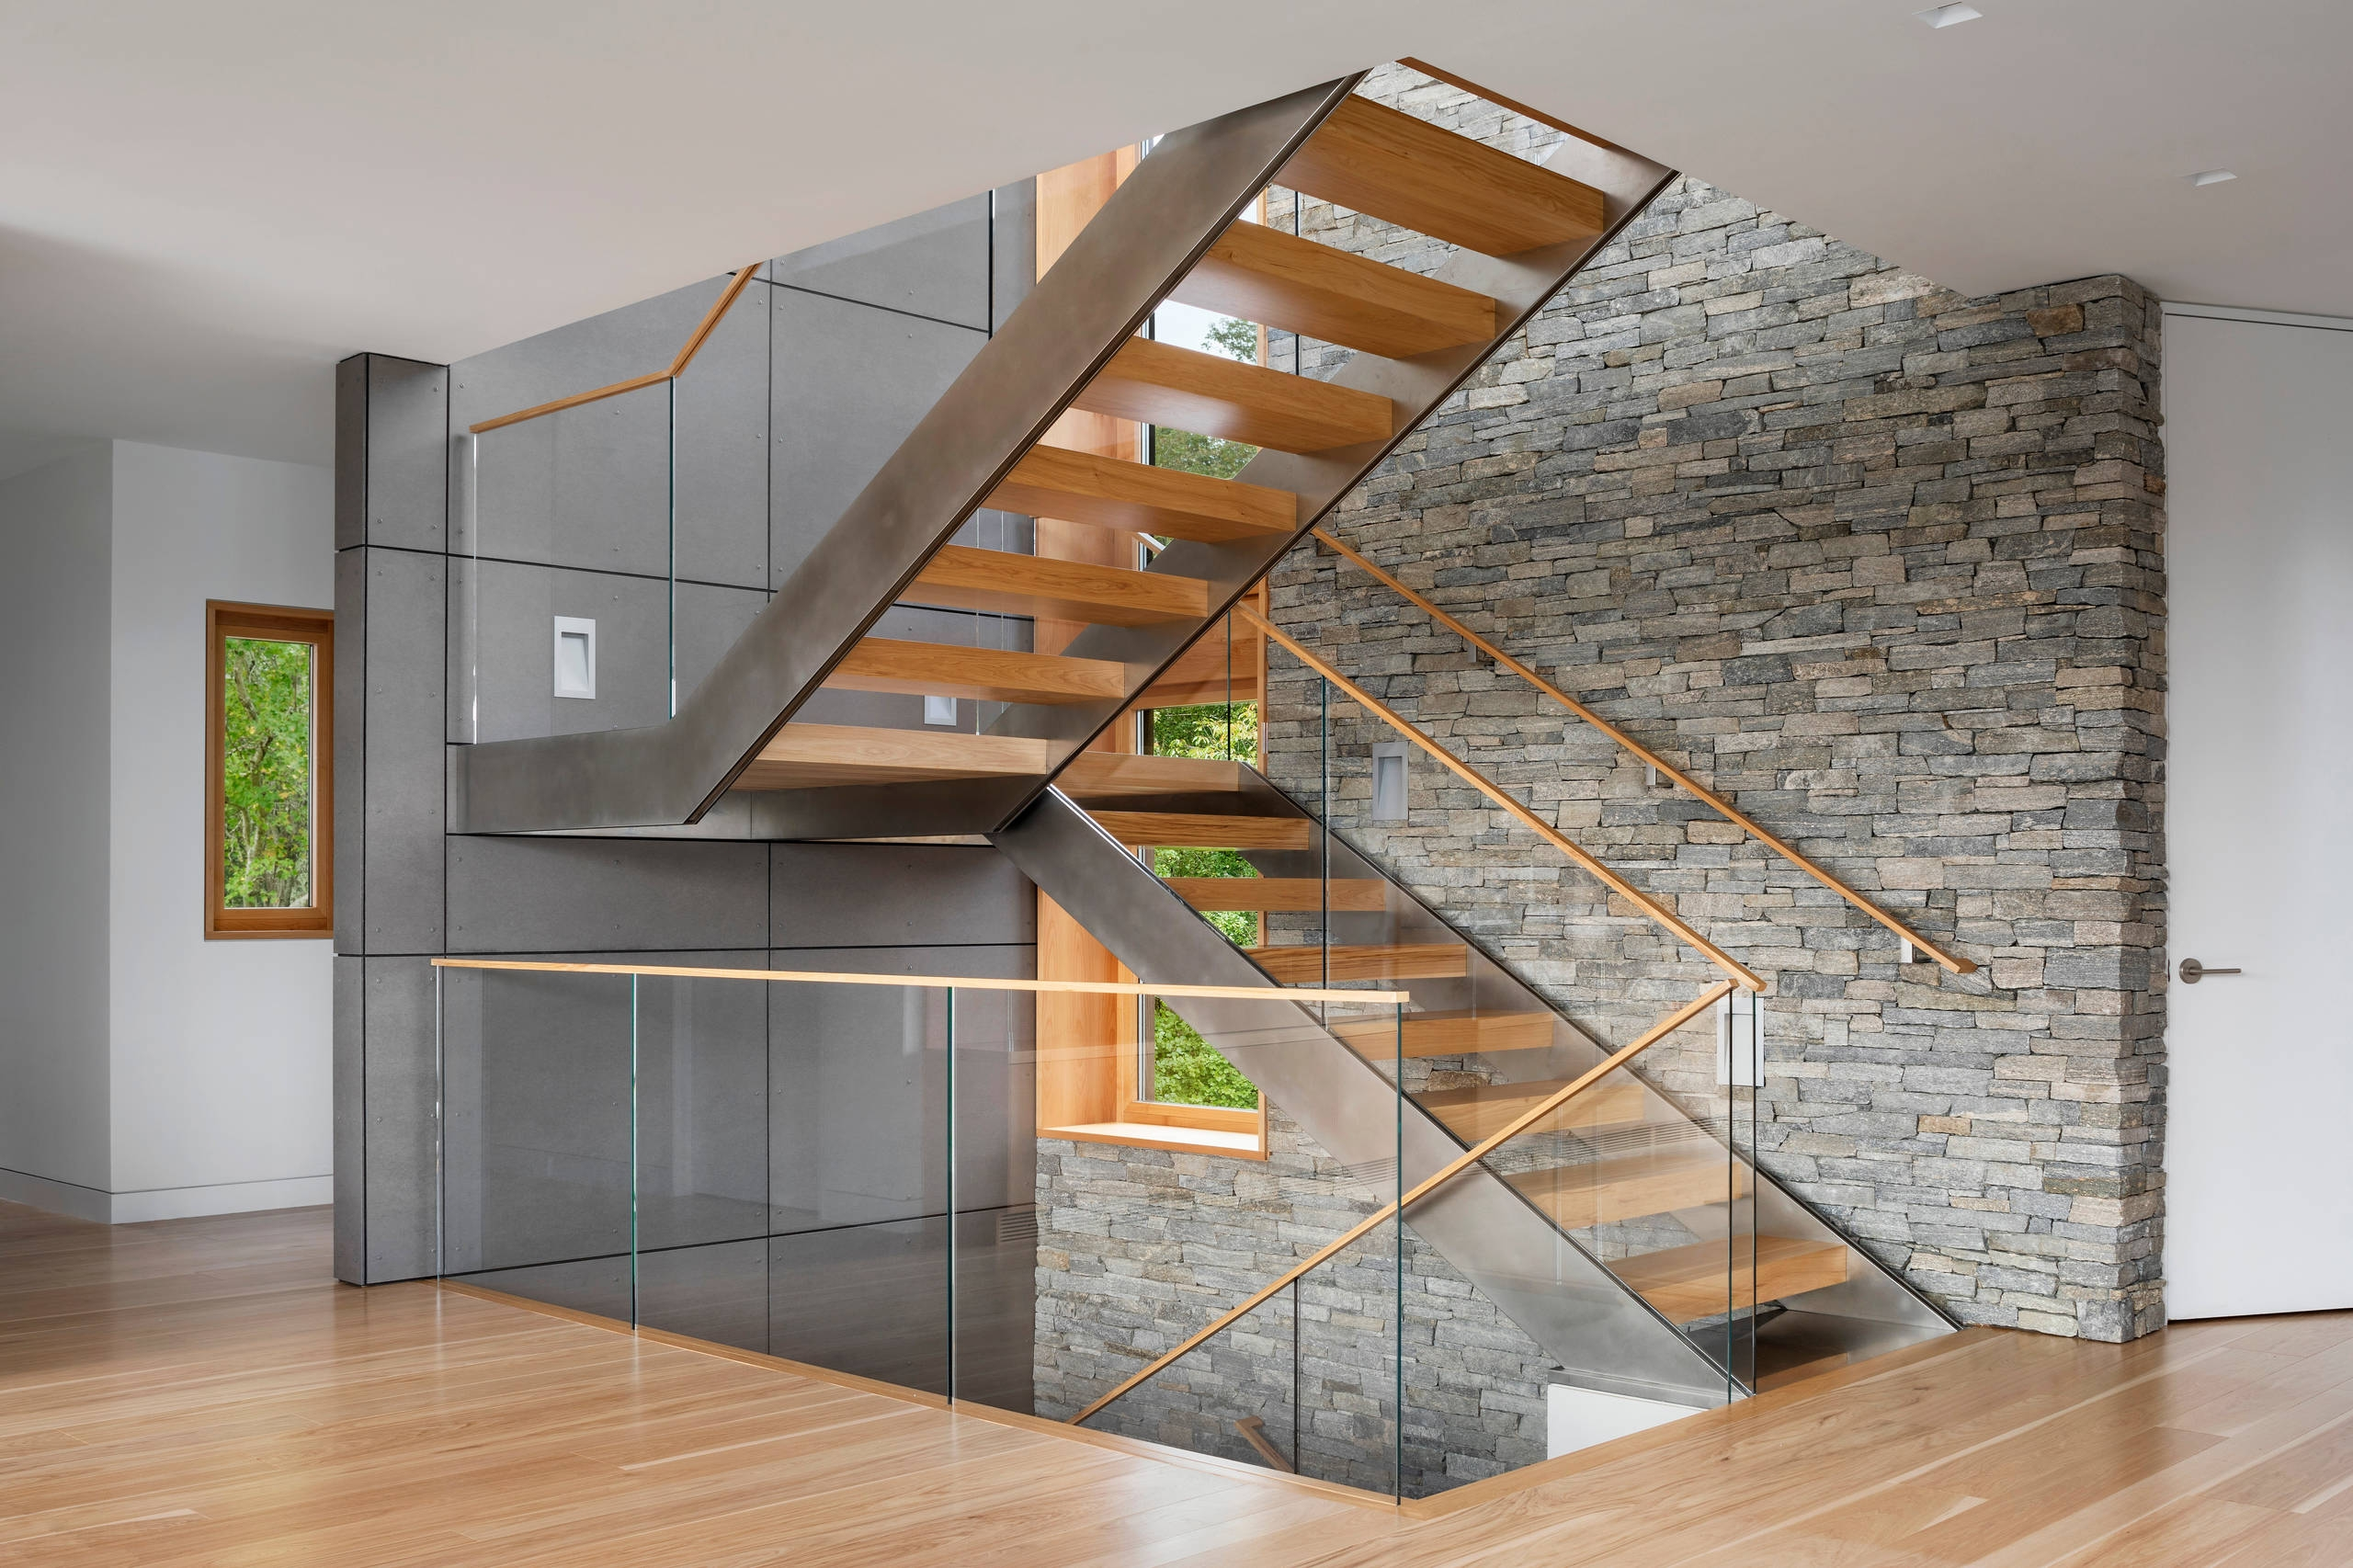 75 Beautiful Modern Staircase Pictures Ideas September 2020 | Staircase Side Window Designs | Window Furniture | Two Story | Angled Staircase | Bedroom | Corner